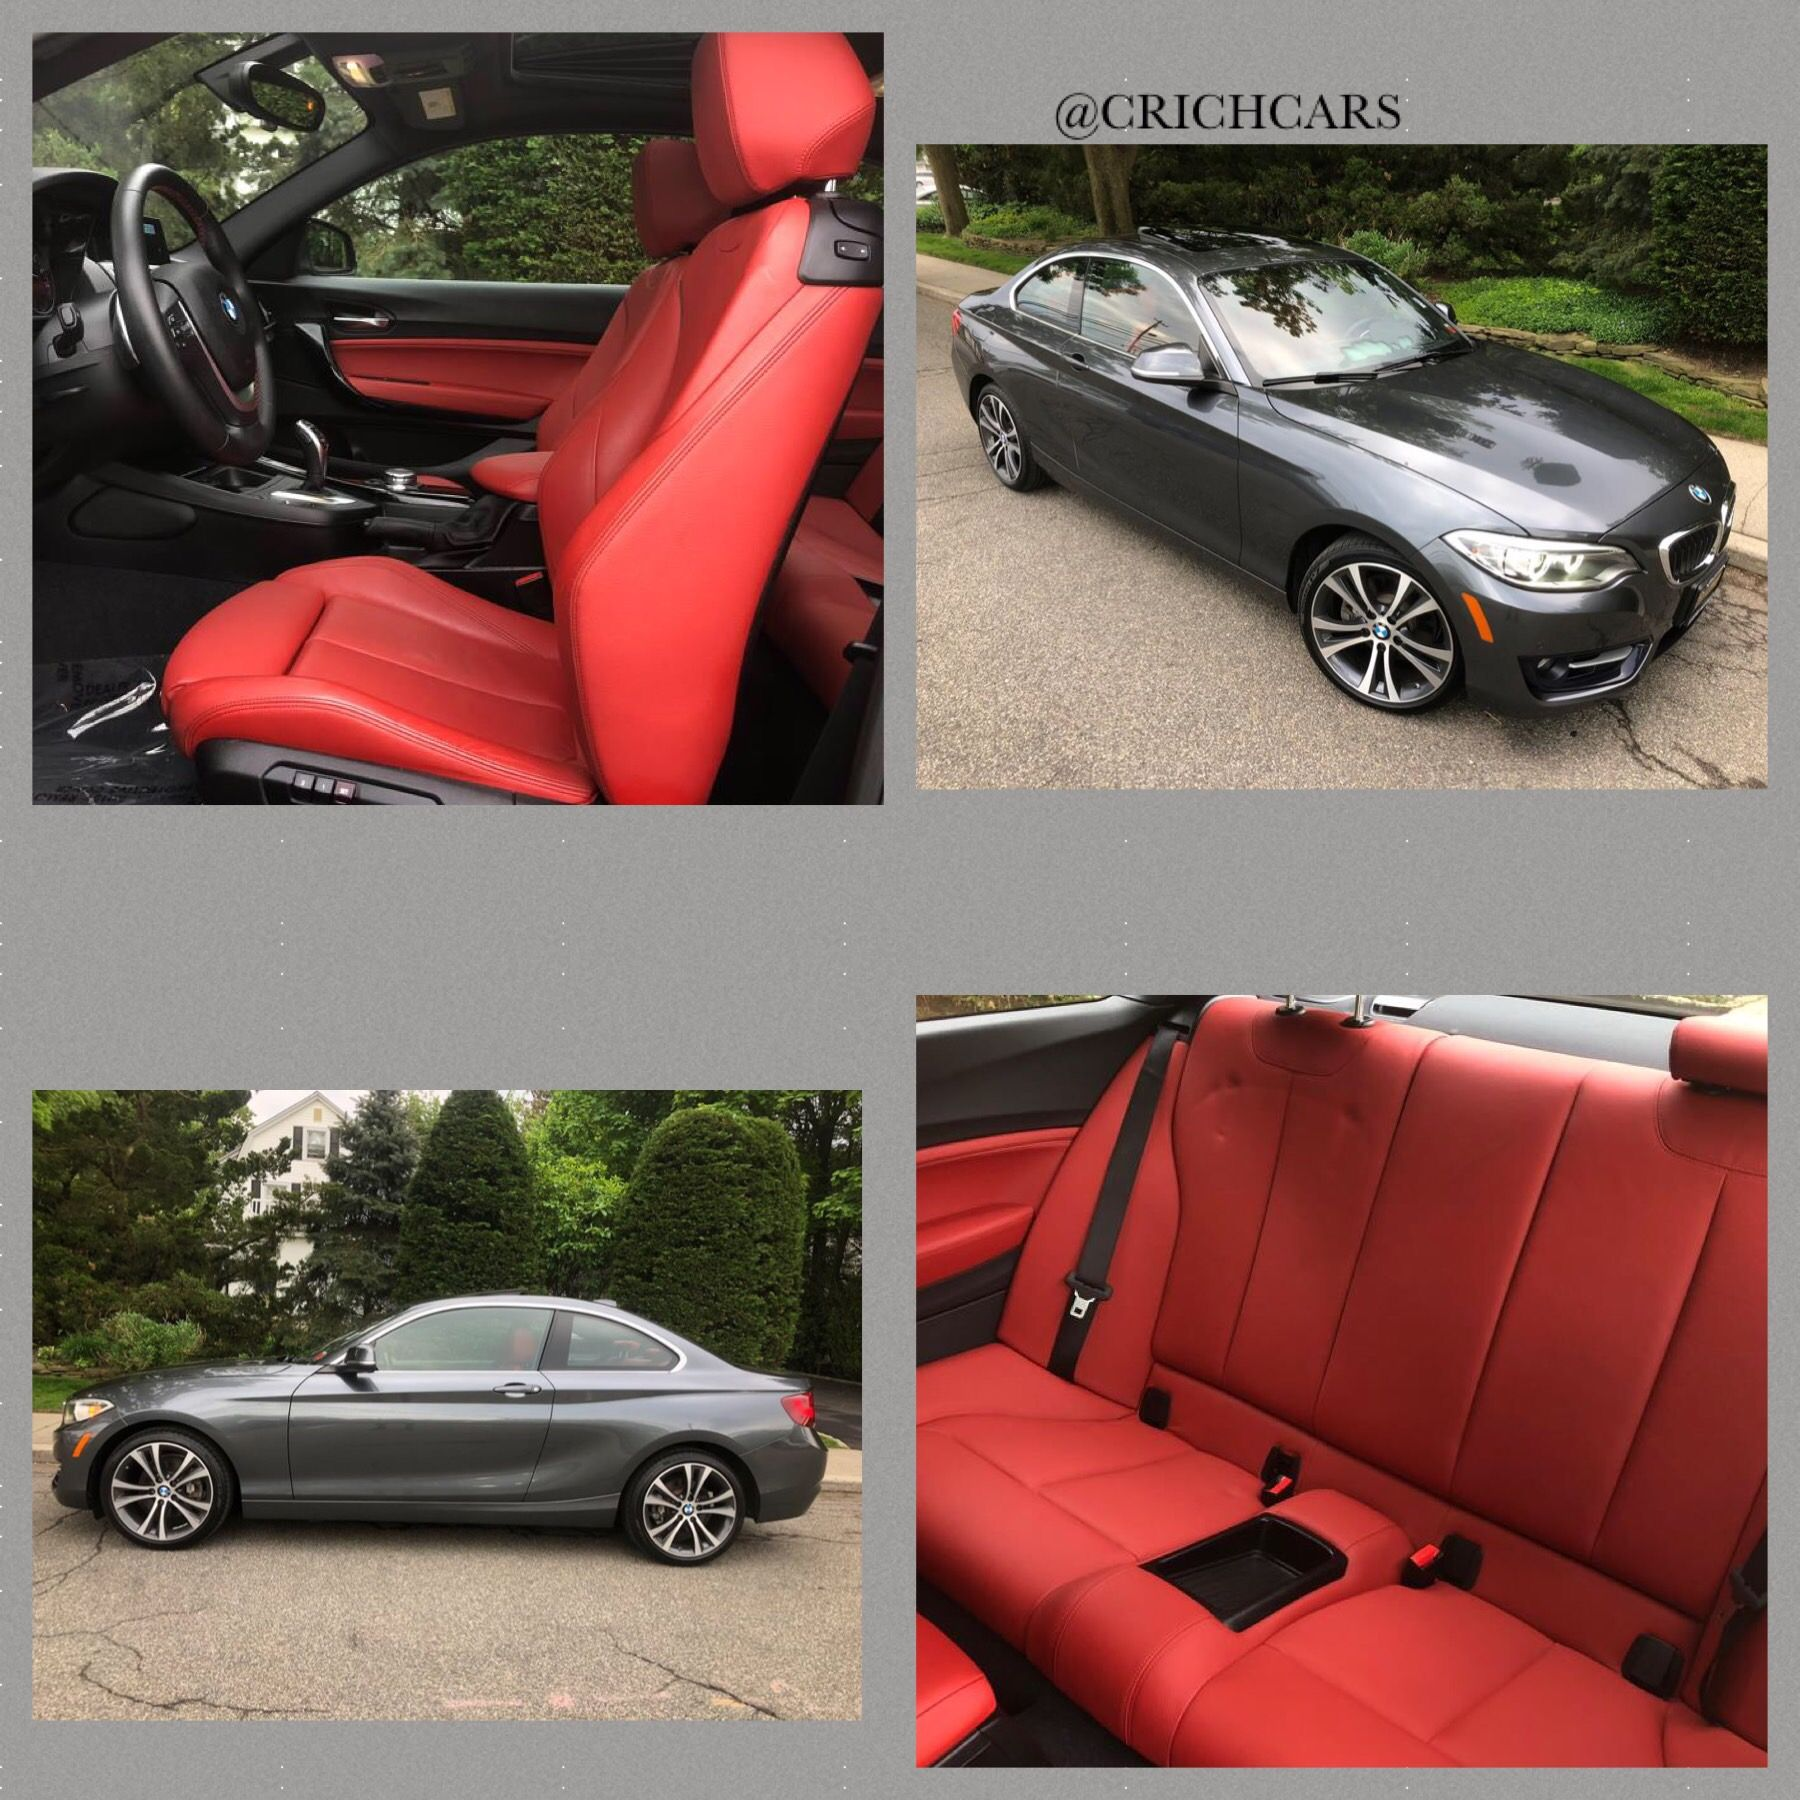 2016 Bmw 2 Series 2dr Cpe 228i Xdrive Awd 20k Miles Only 239 A Month Text 516 476 1314 Chris Www Crichcars Com Bmw Bmw 2 2016 Bmw 3 Series